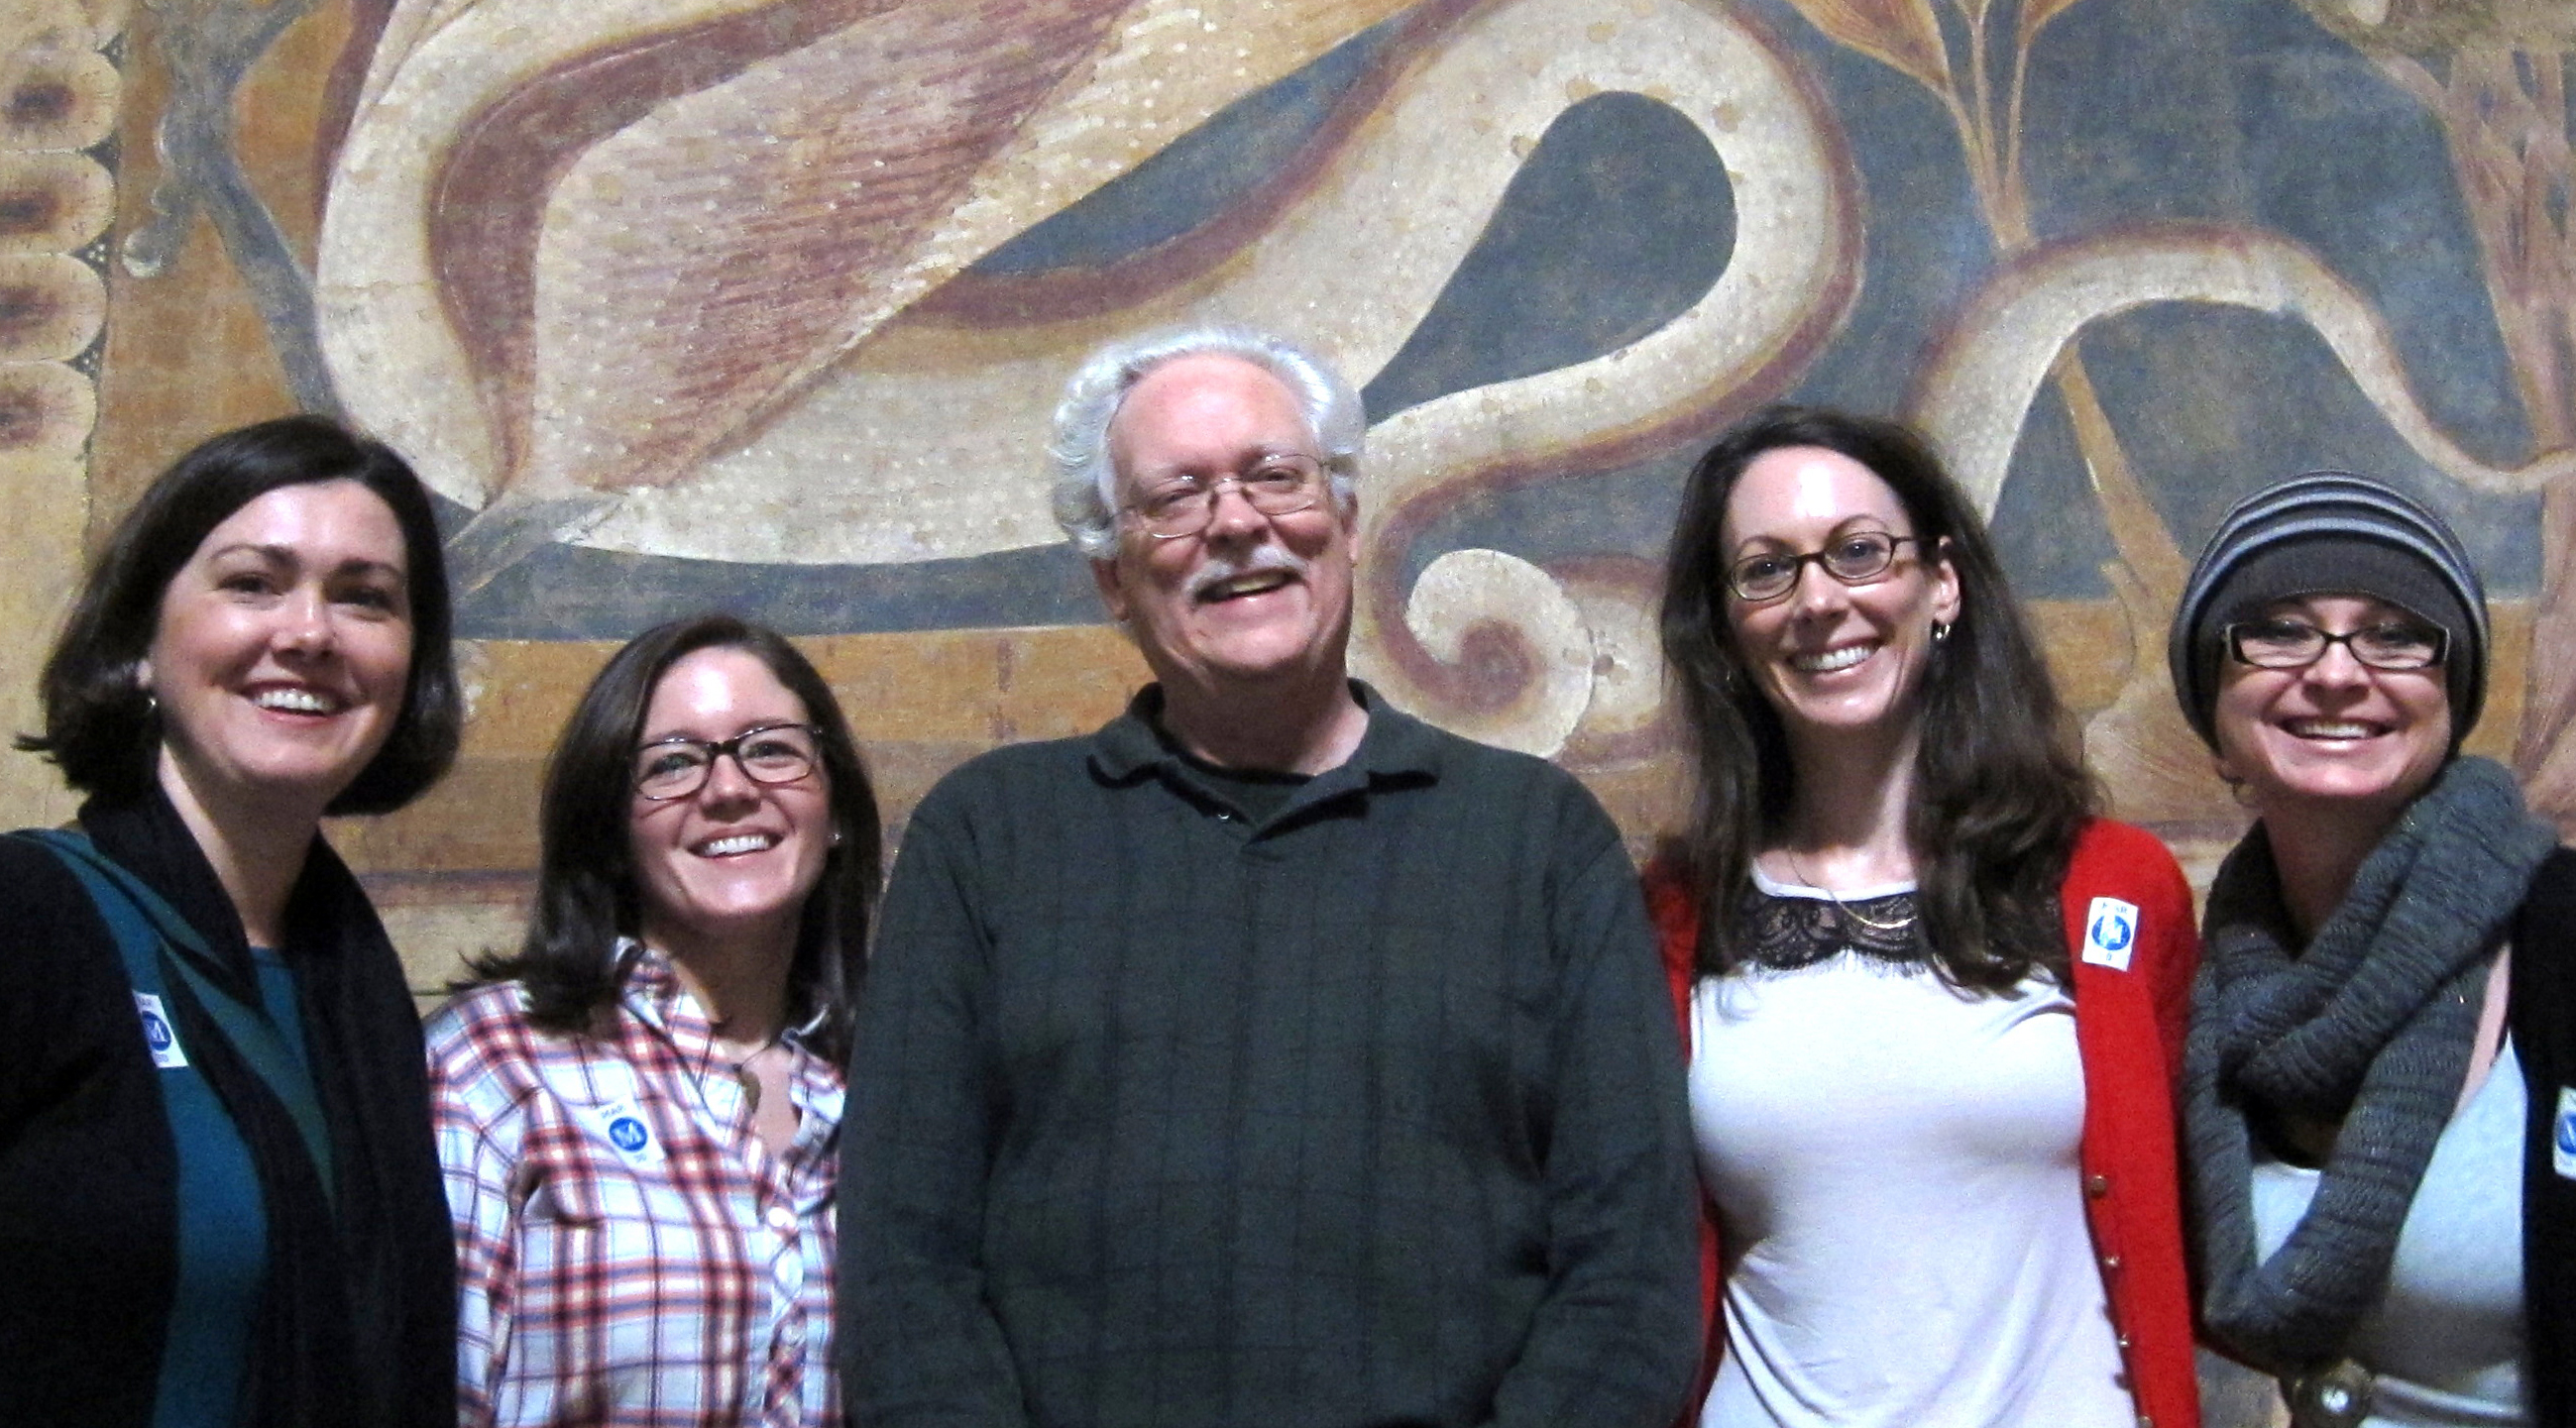 Richard Emmerson at The Cloisters with Jennifer Feltman, Deirdre Carter, Karlyn Griffith, and Carey Fee.